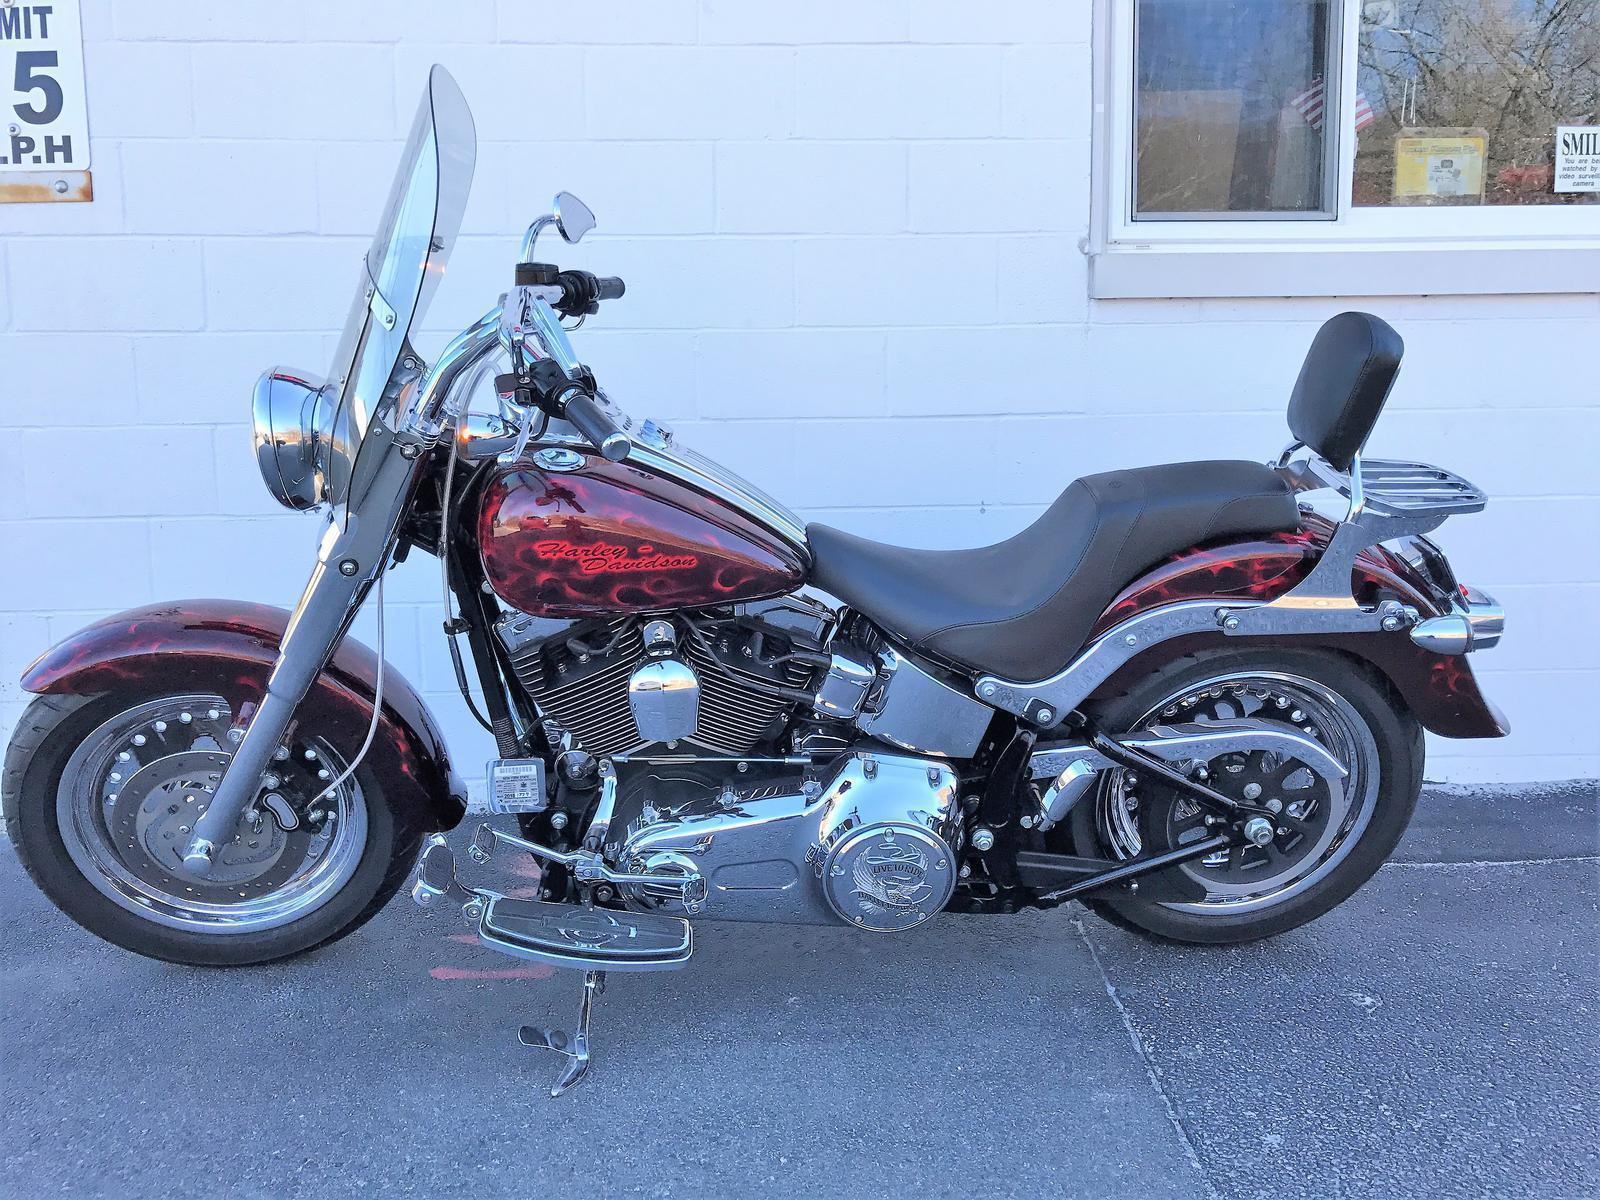 2009 Harley-Davidson® Softail® Fat Boy® for sale in Elmsford, NY ...